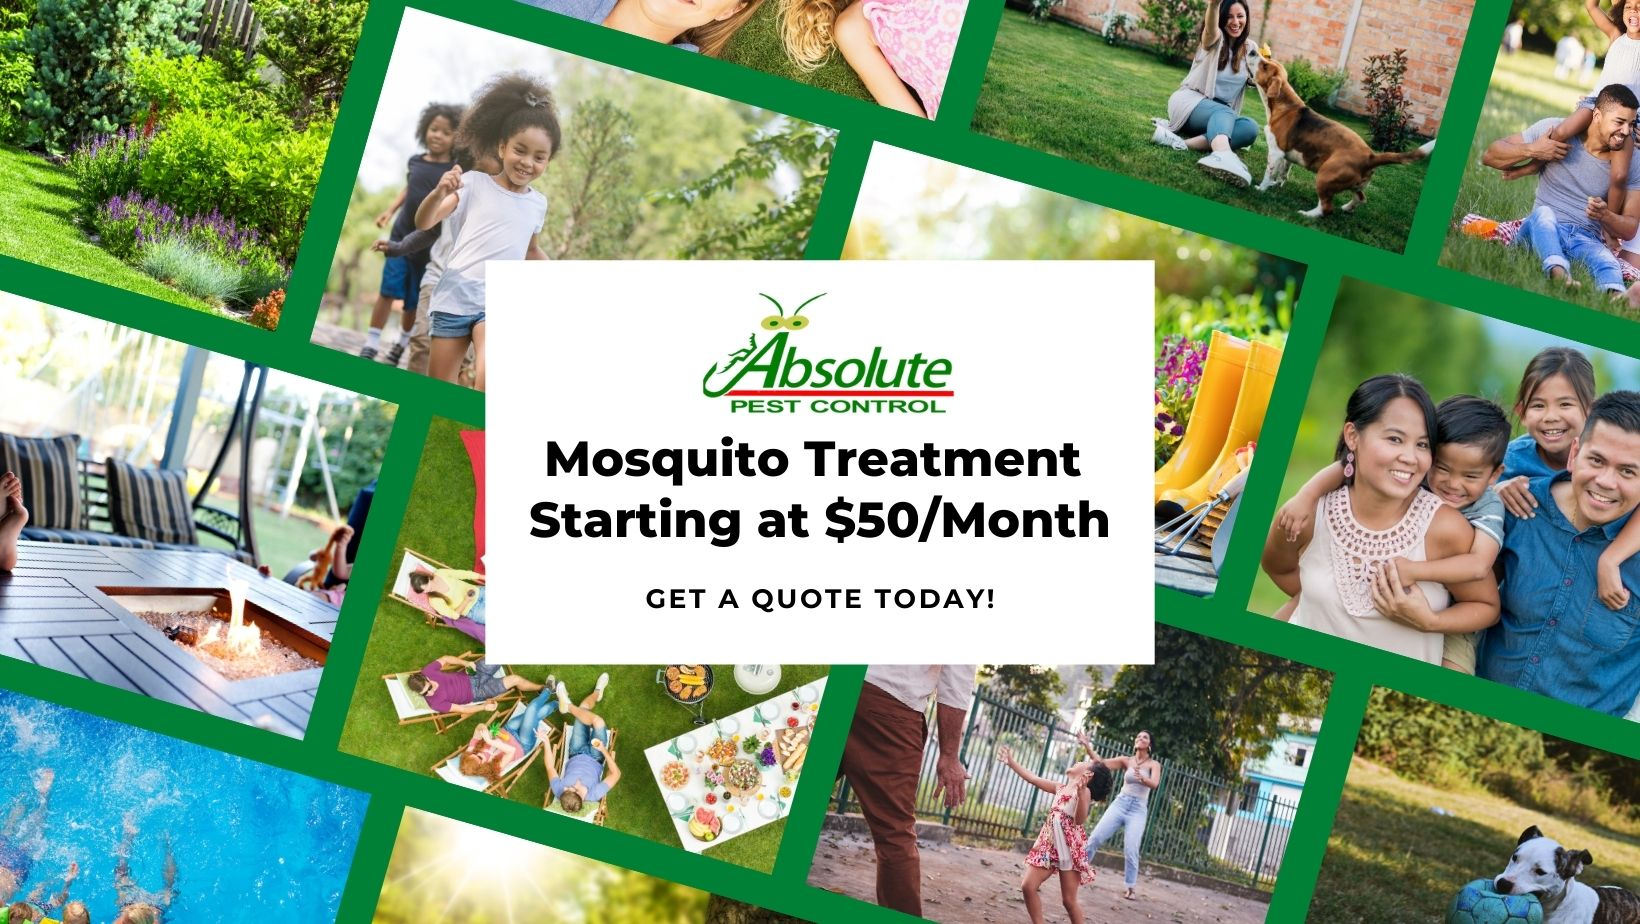 Mosquito get quote pic and button